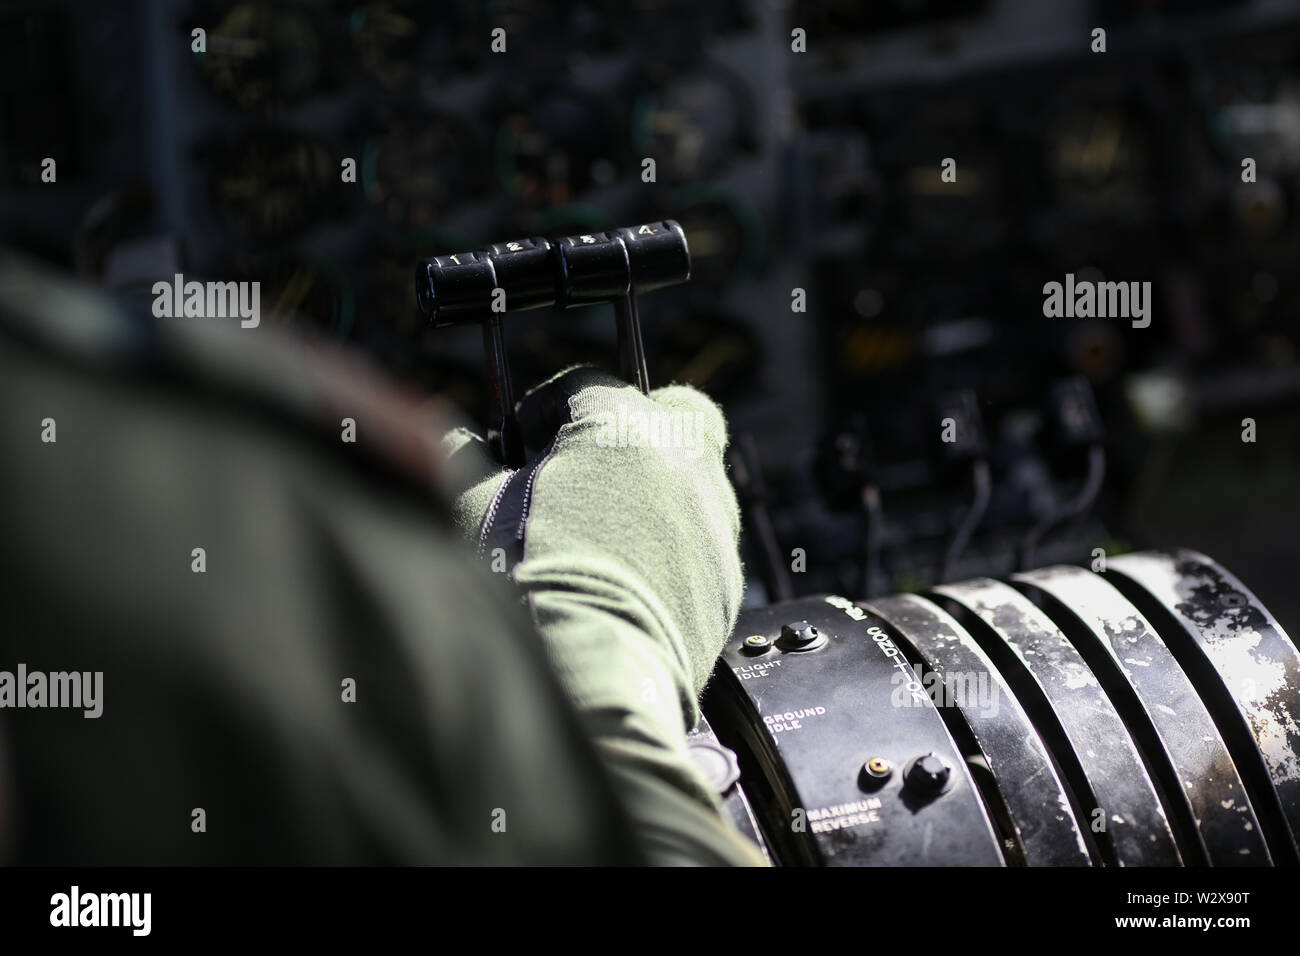 Details with the thrust lever on a military cargo airplane. - Stock Image